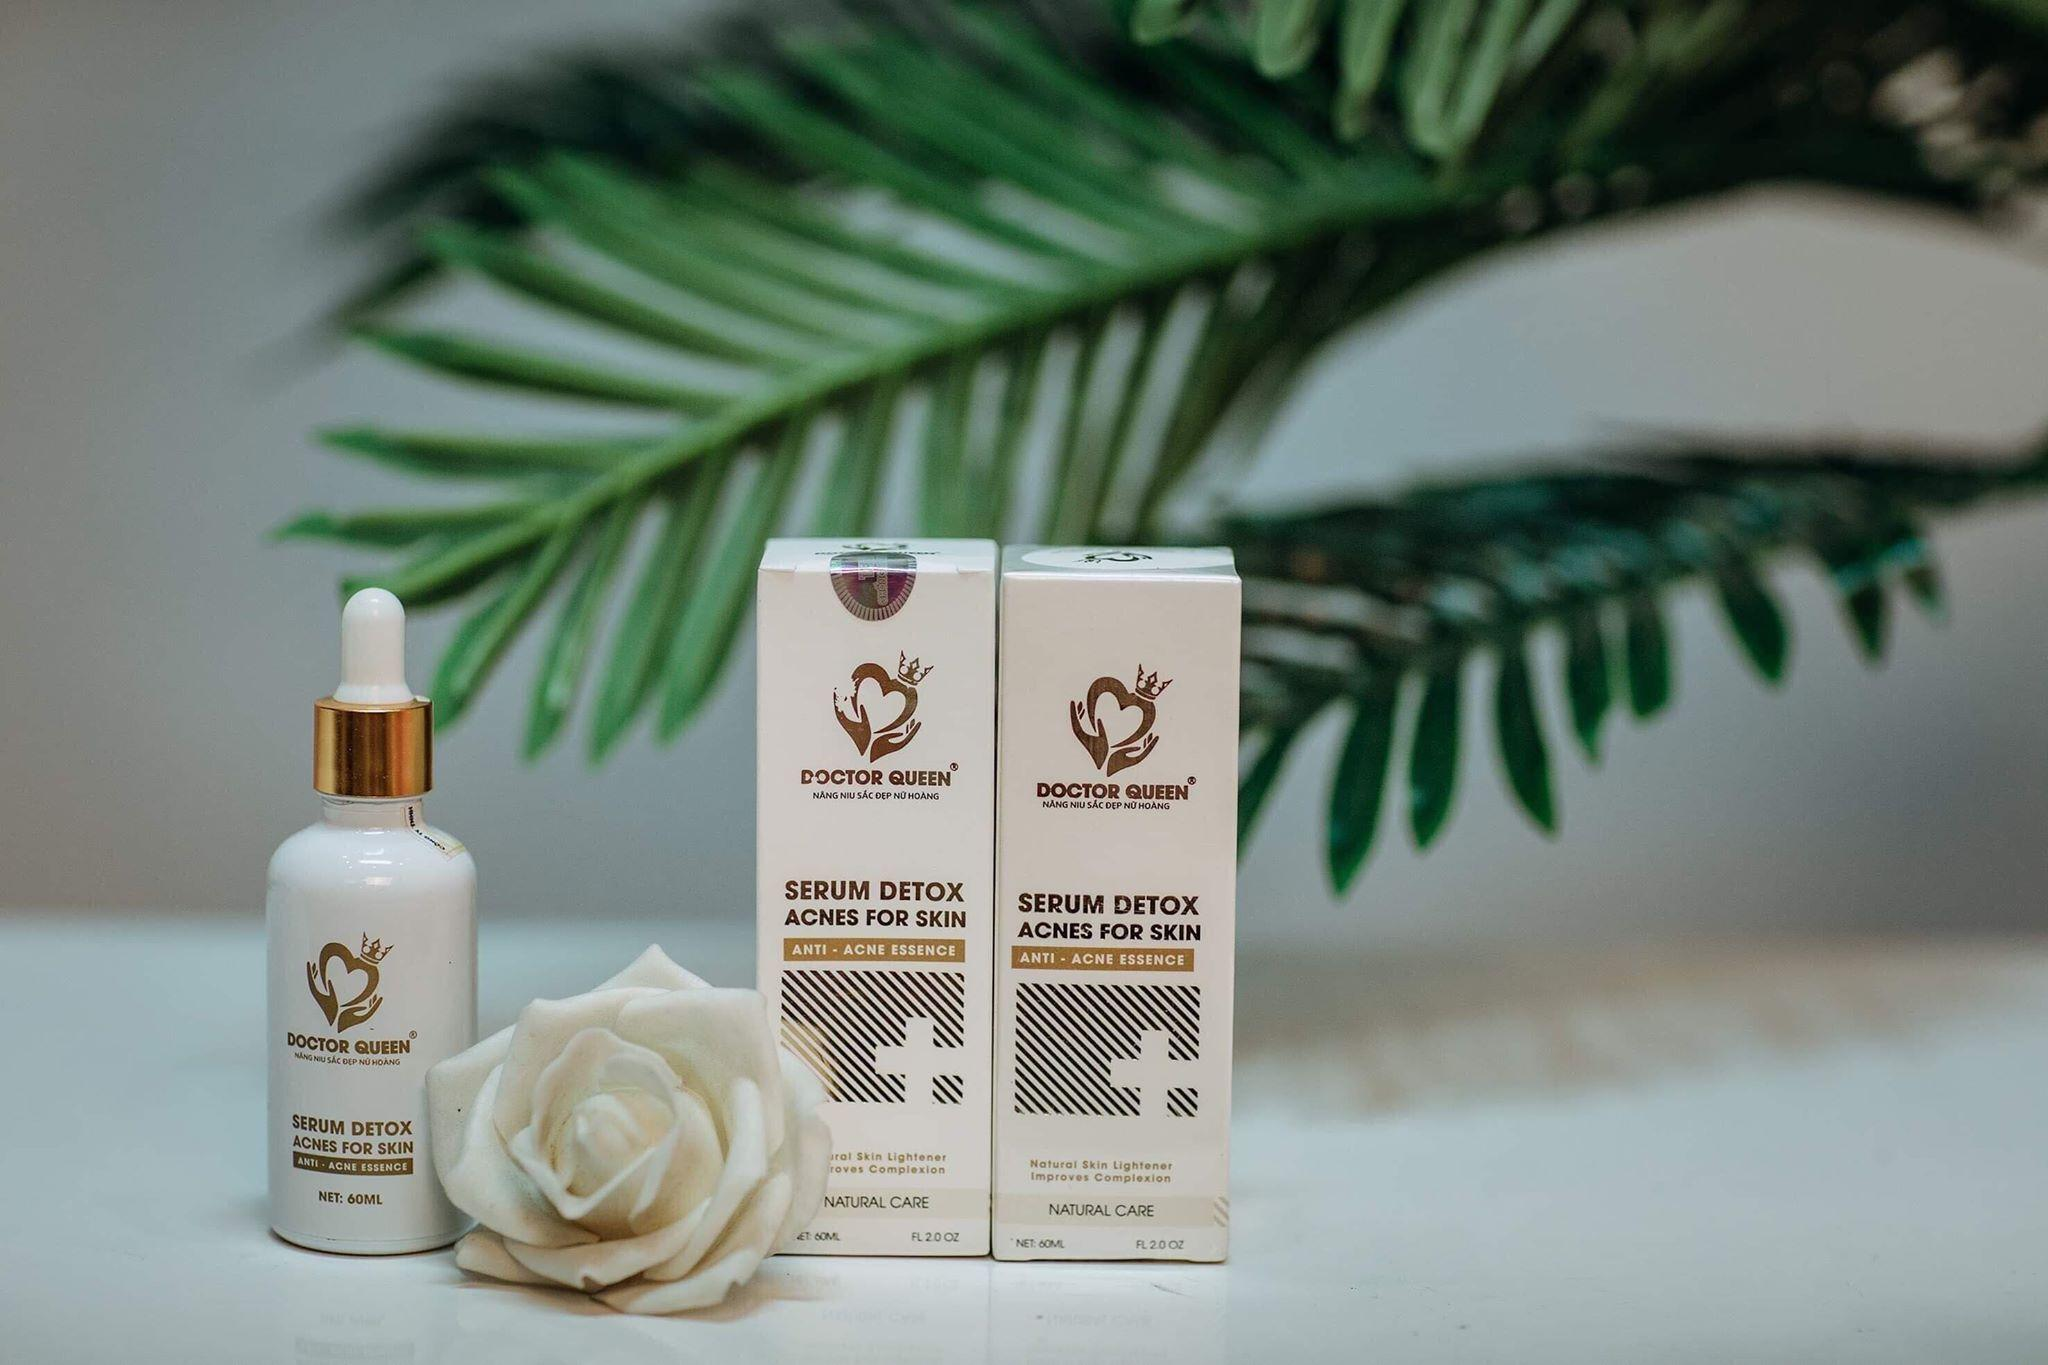 Serum Detox Acnes For Skin Ngăn Ngừa Mụn Doctor Queen